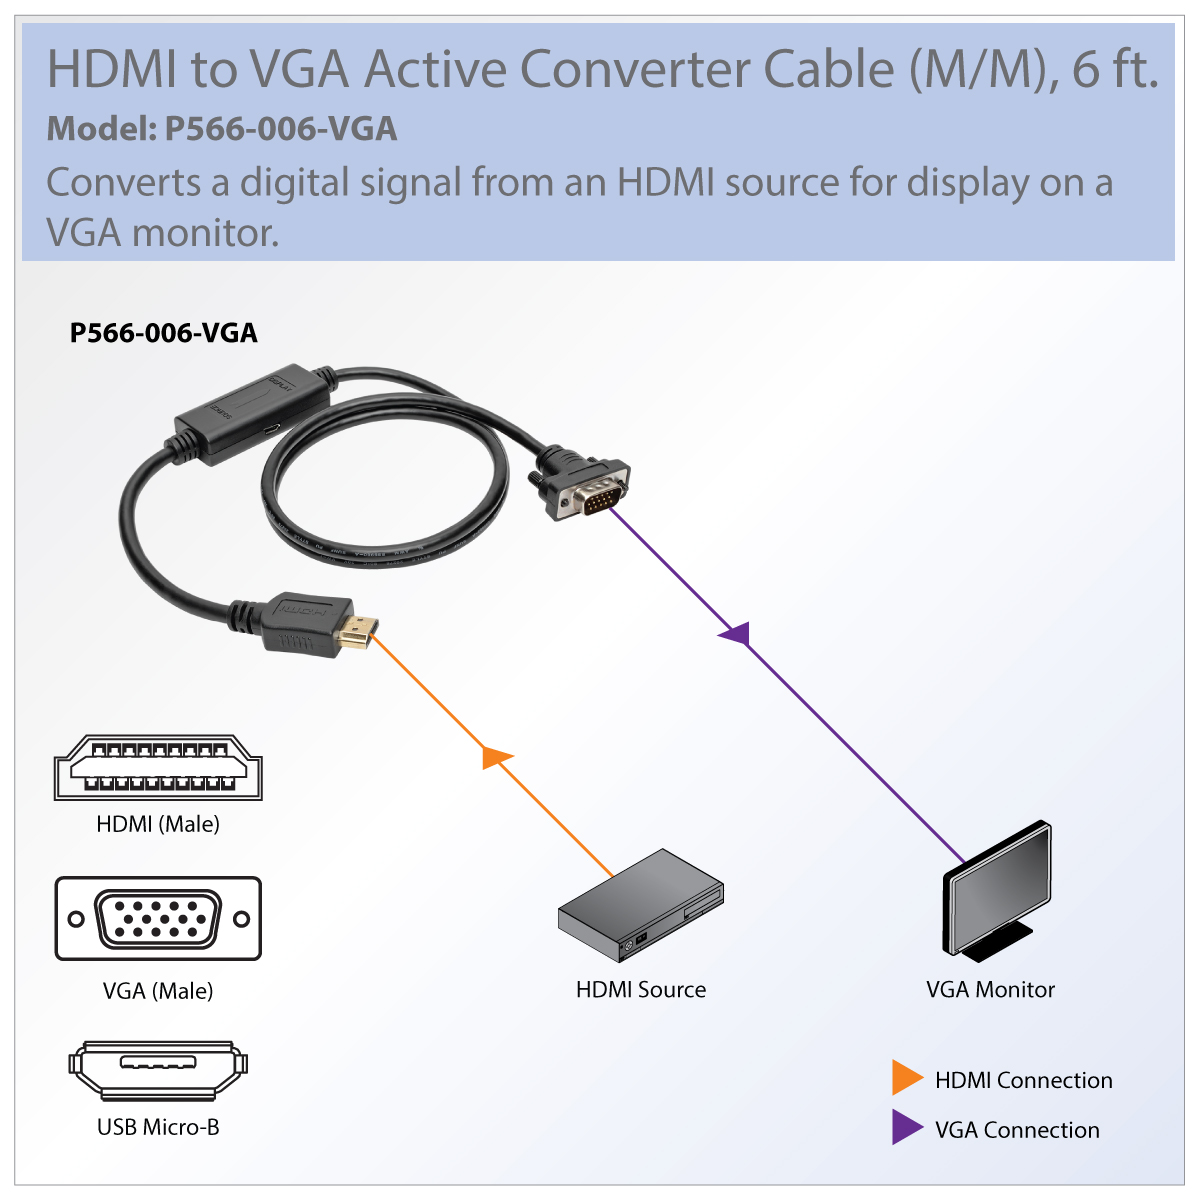 Tripp Lite Hdmi To Vga Active Adapter Cable Low Profile Hd15 M Usb Wiring Diagram Color Show Content On Your Existing Display